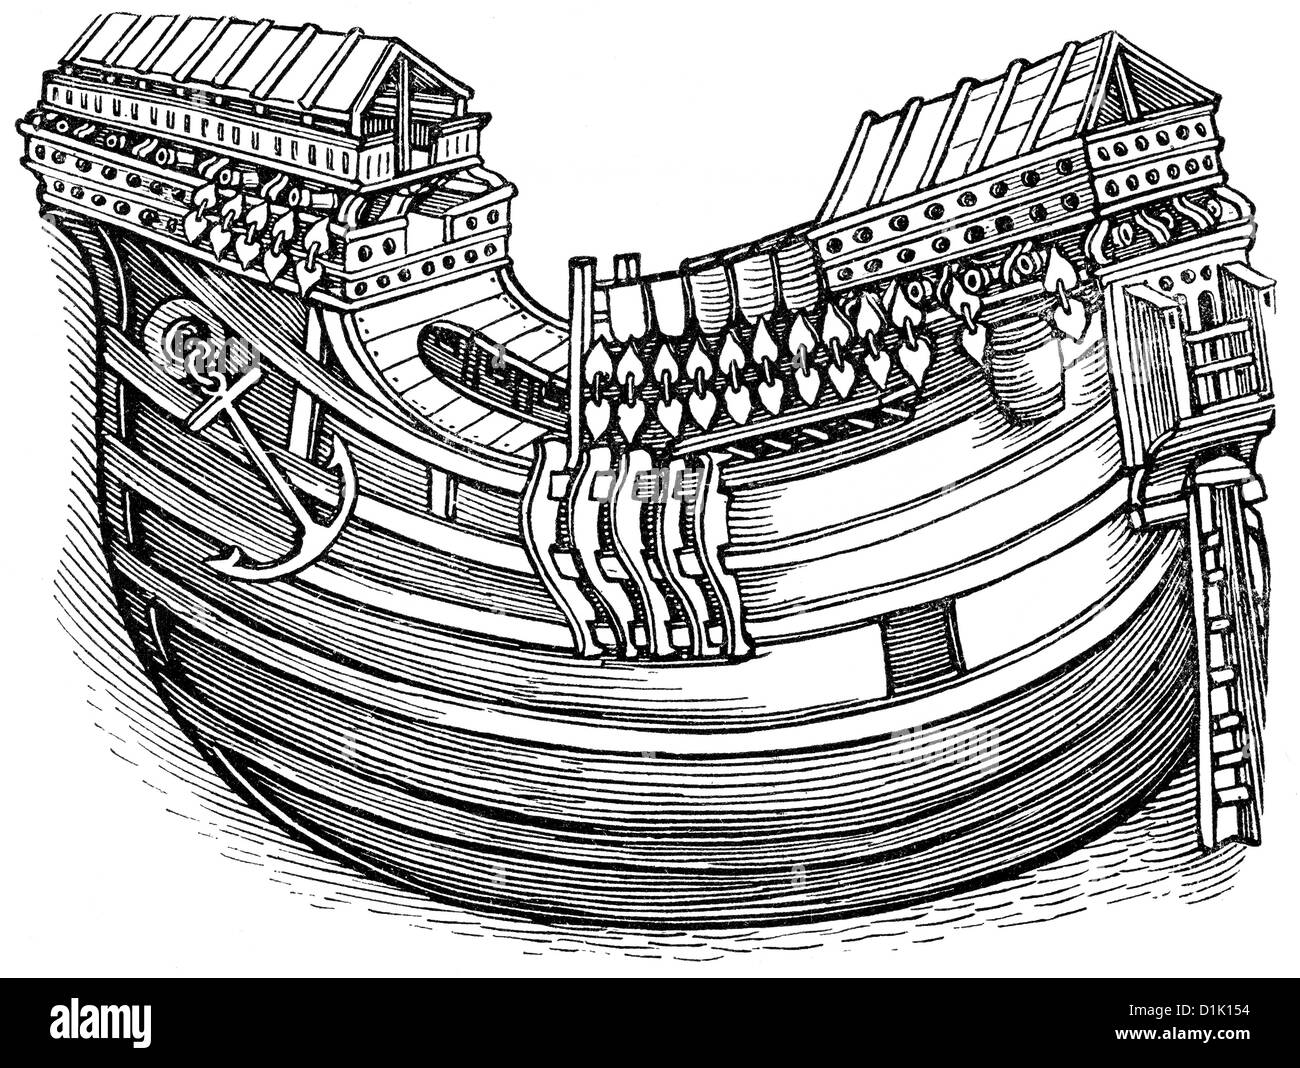 Historical drawing of a ship's hull, ship of an East Indian explorer, a ship of the Dutch East India Company, - Stock Image